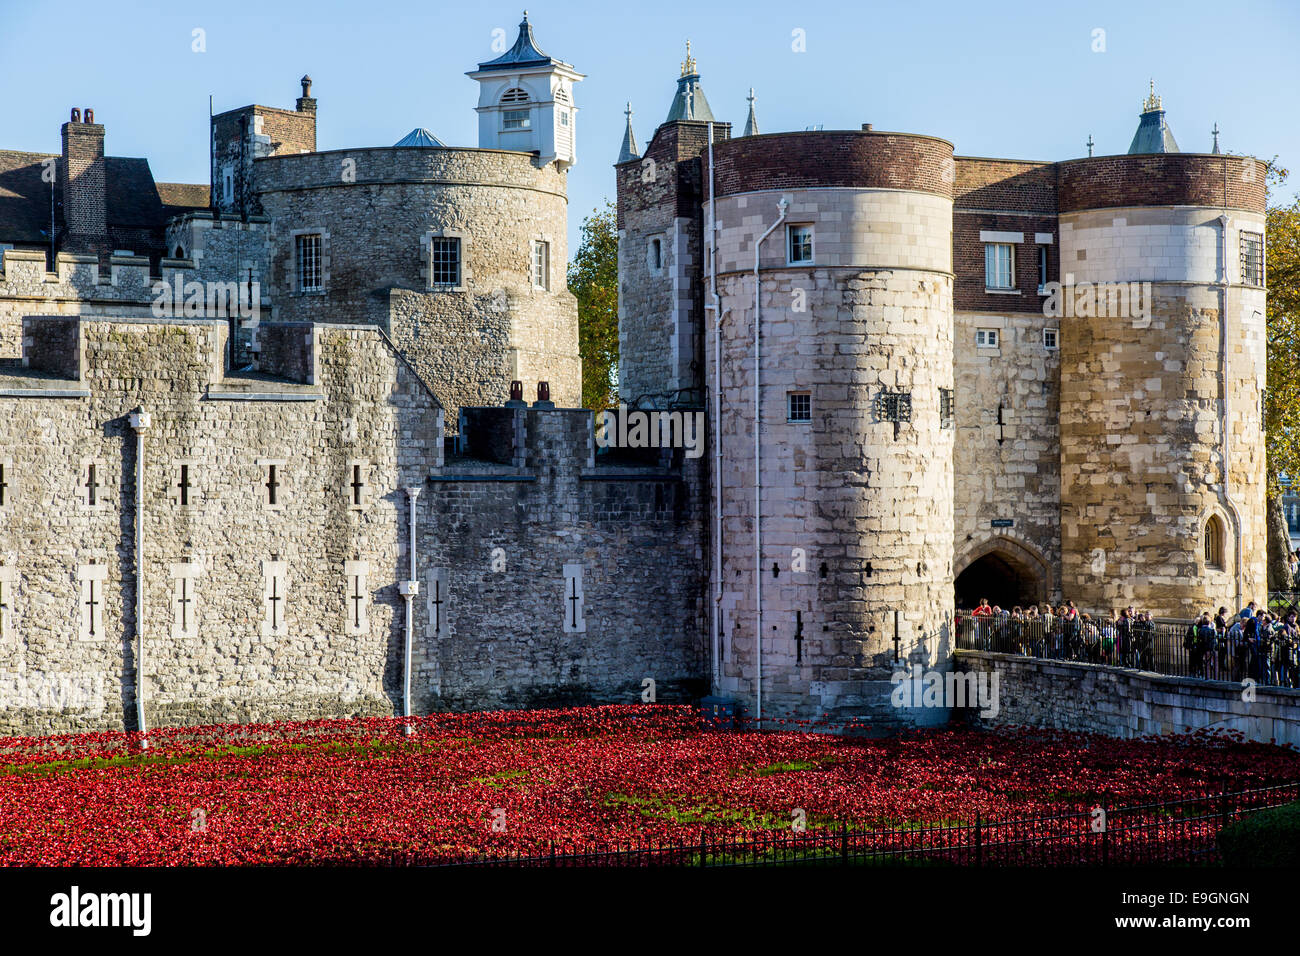 Blood Swept Lands and Seas of Red - Poppies Tower of London UK Stock Photo